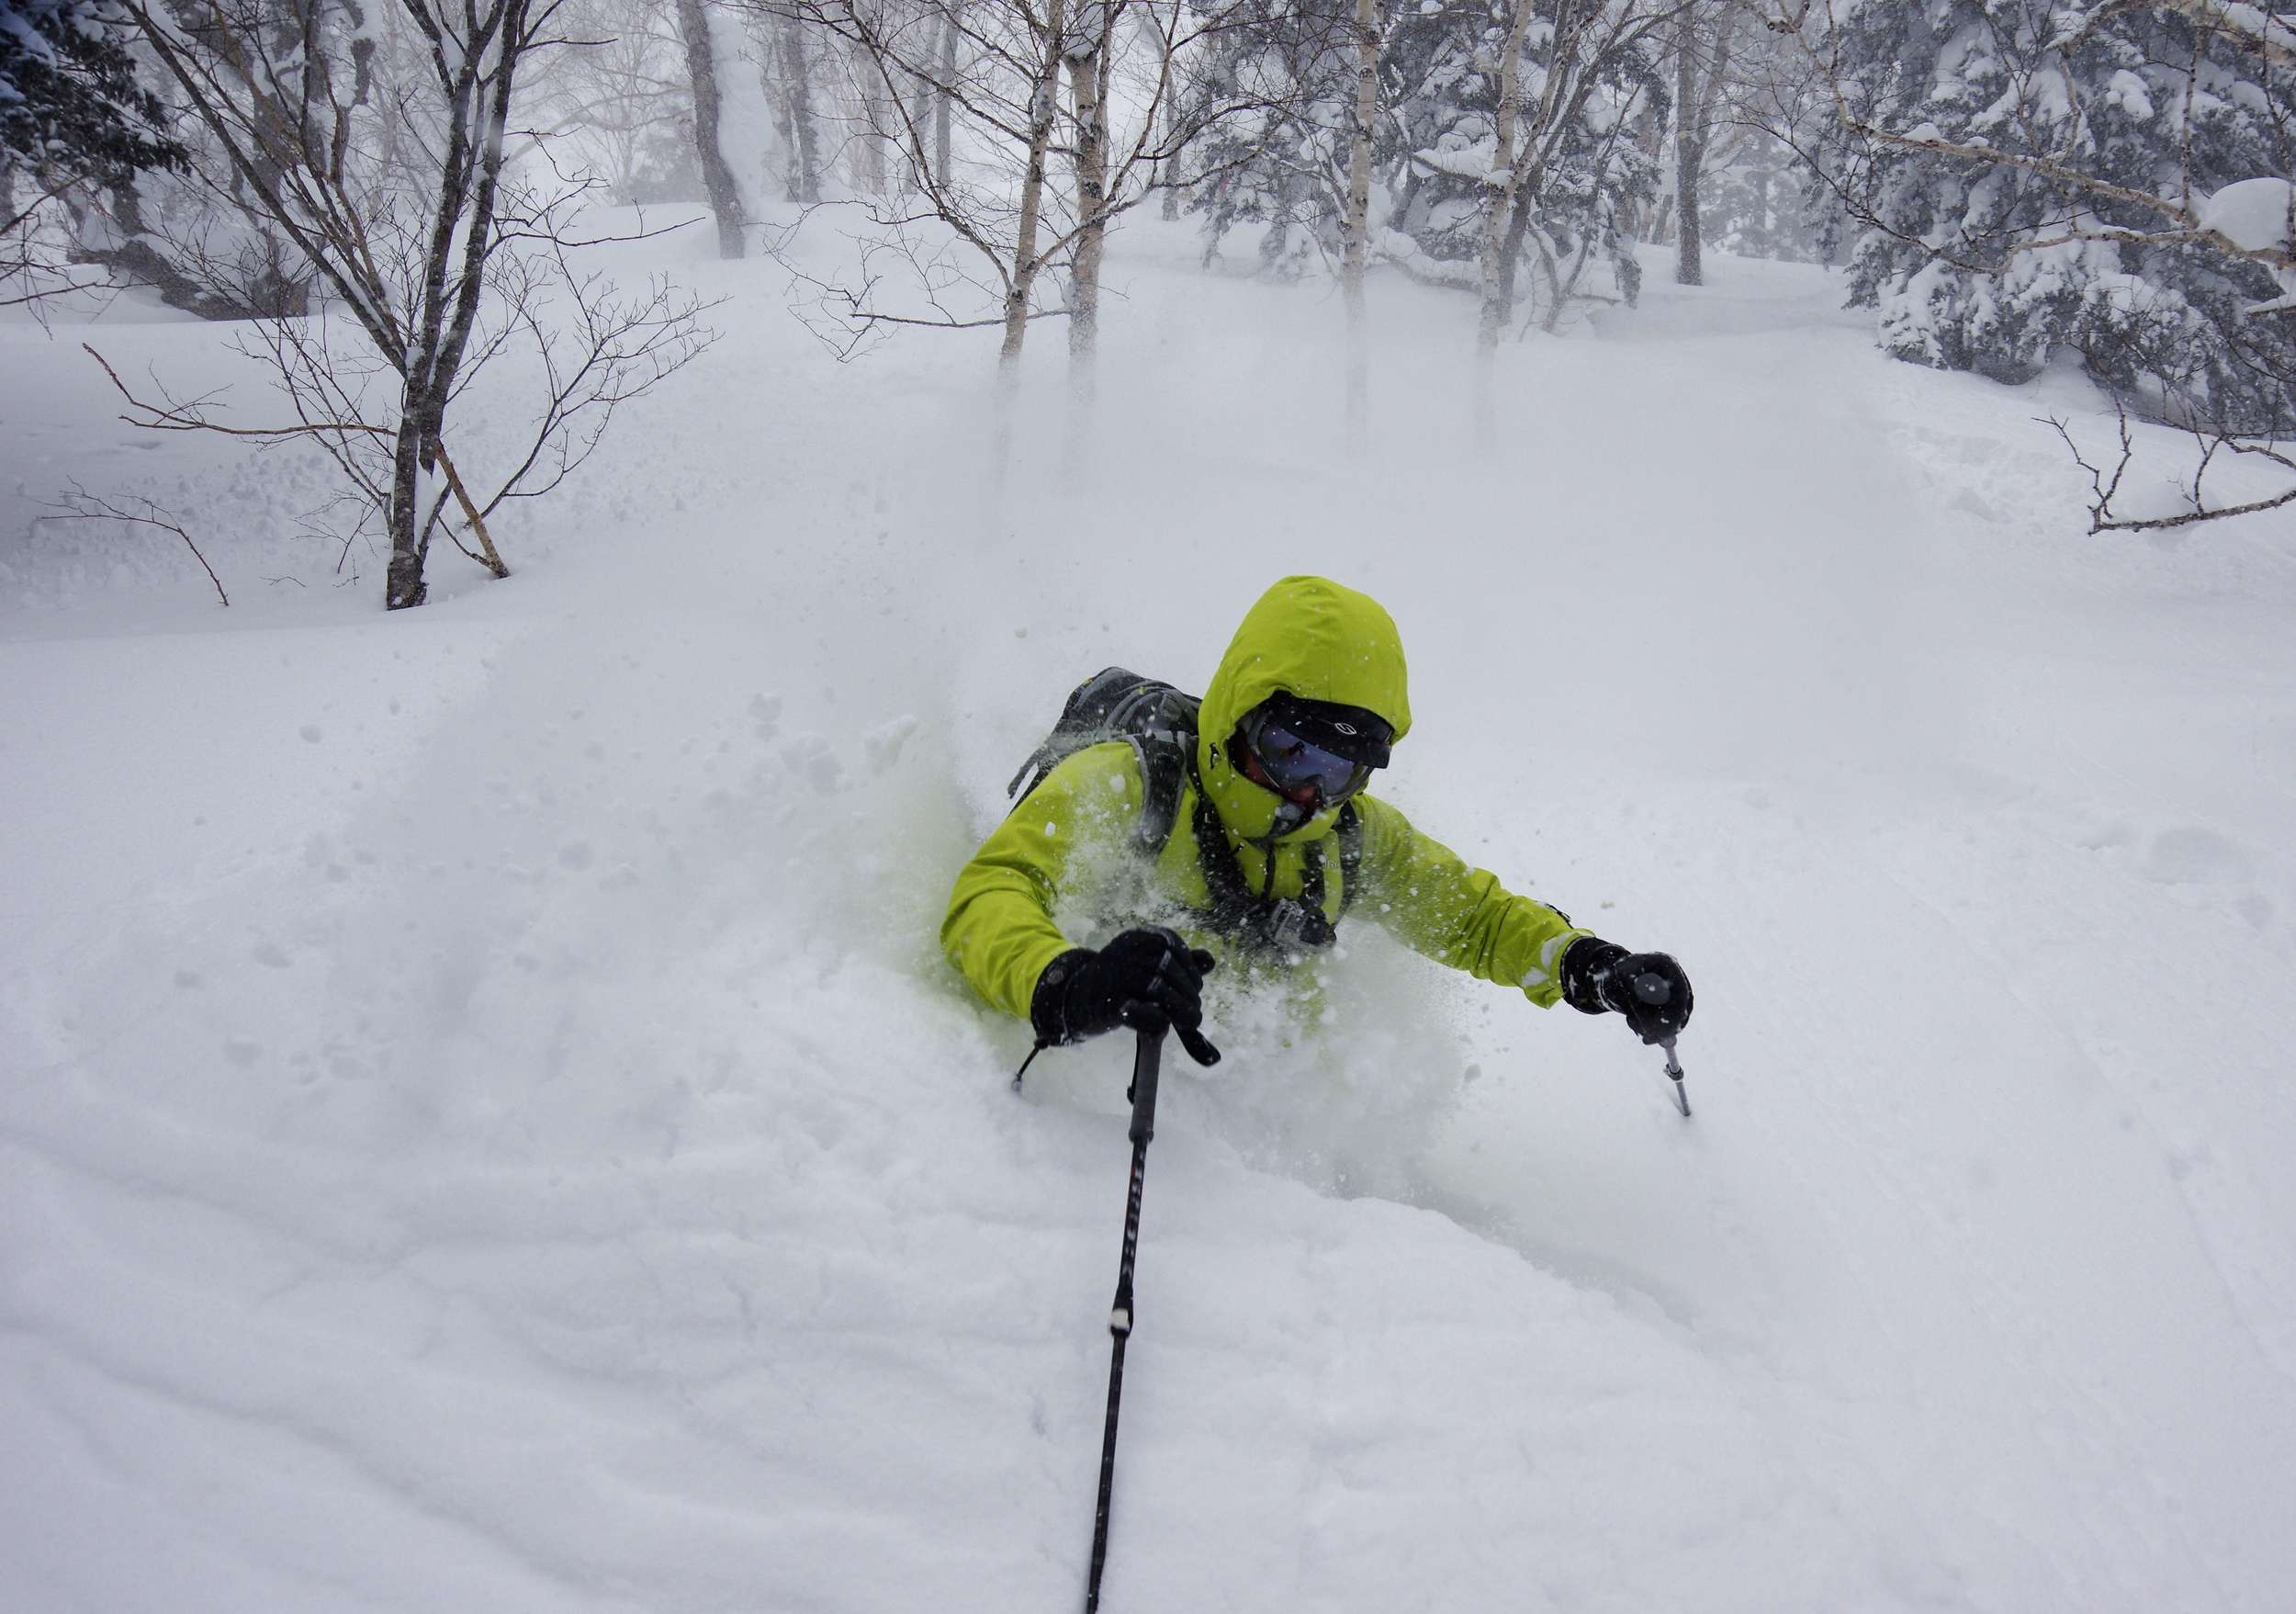 It was so snowy in the Hokkaido backcountry that Top Dog needed the hood on.